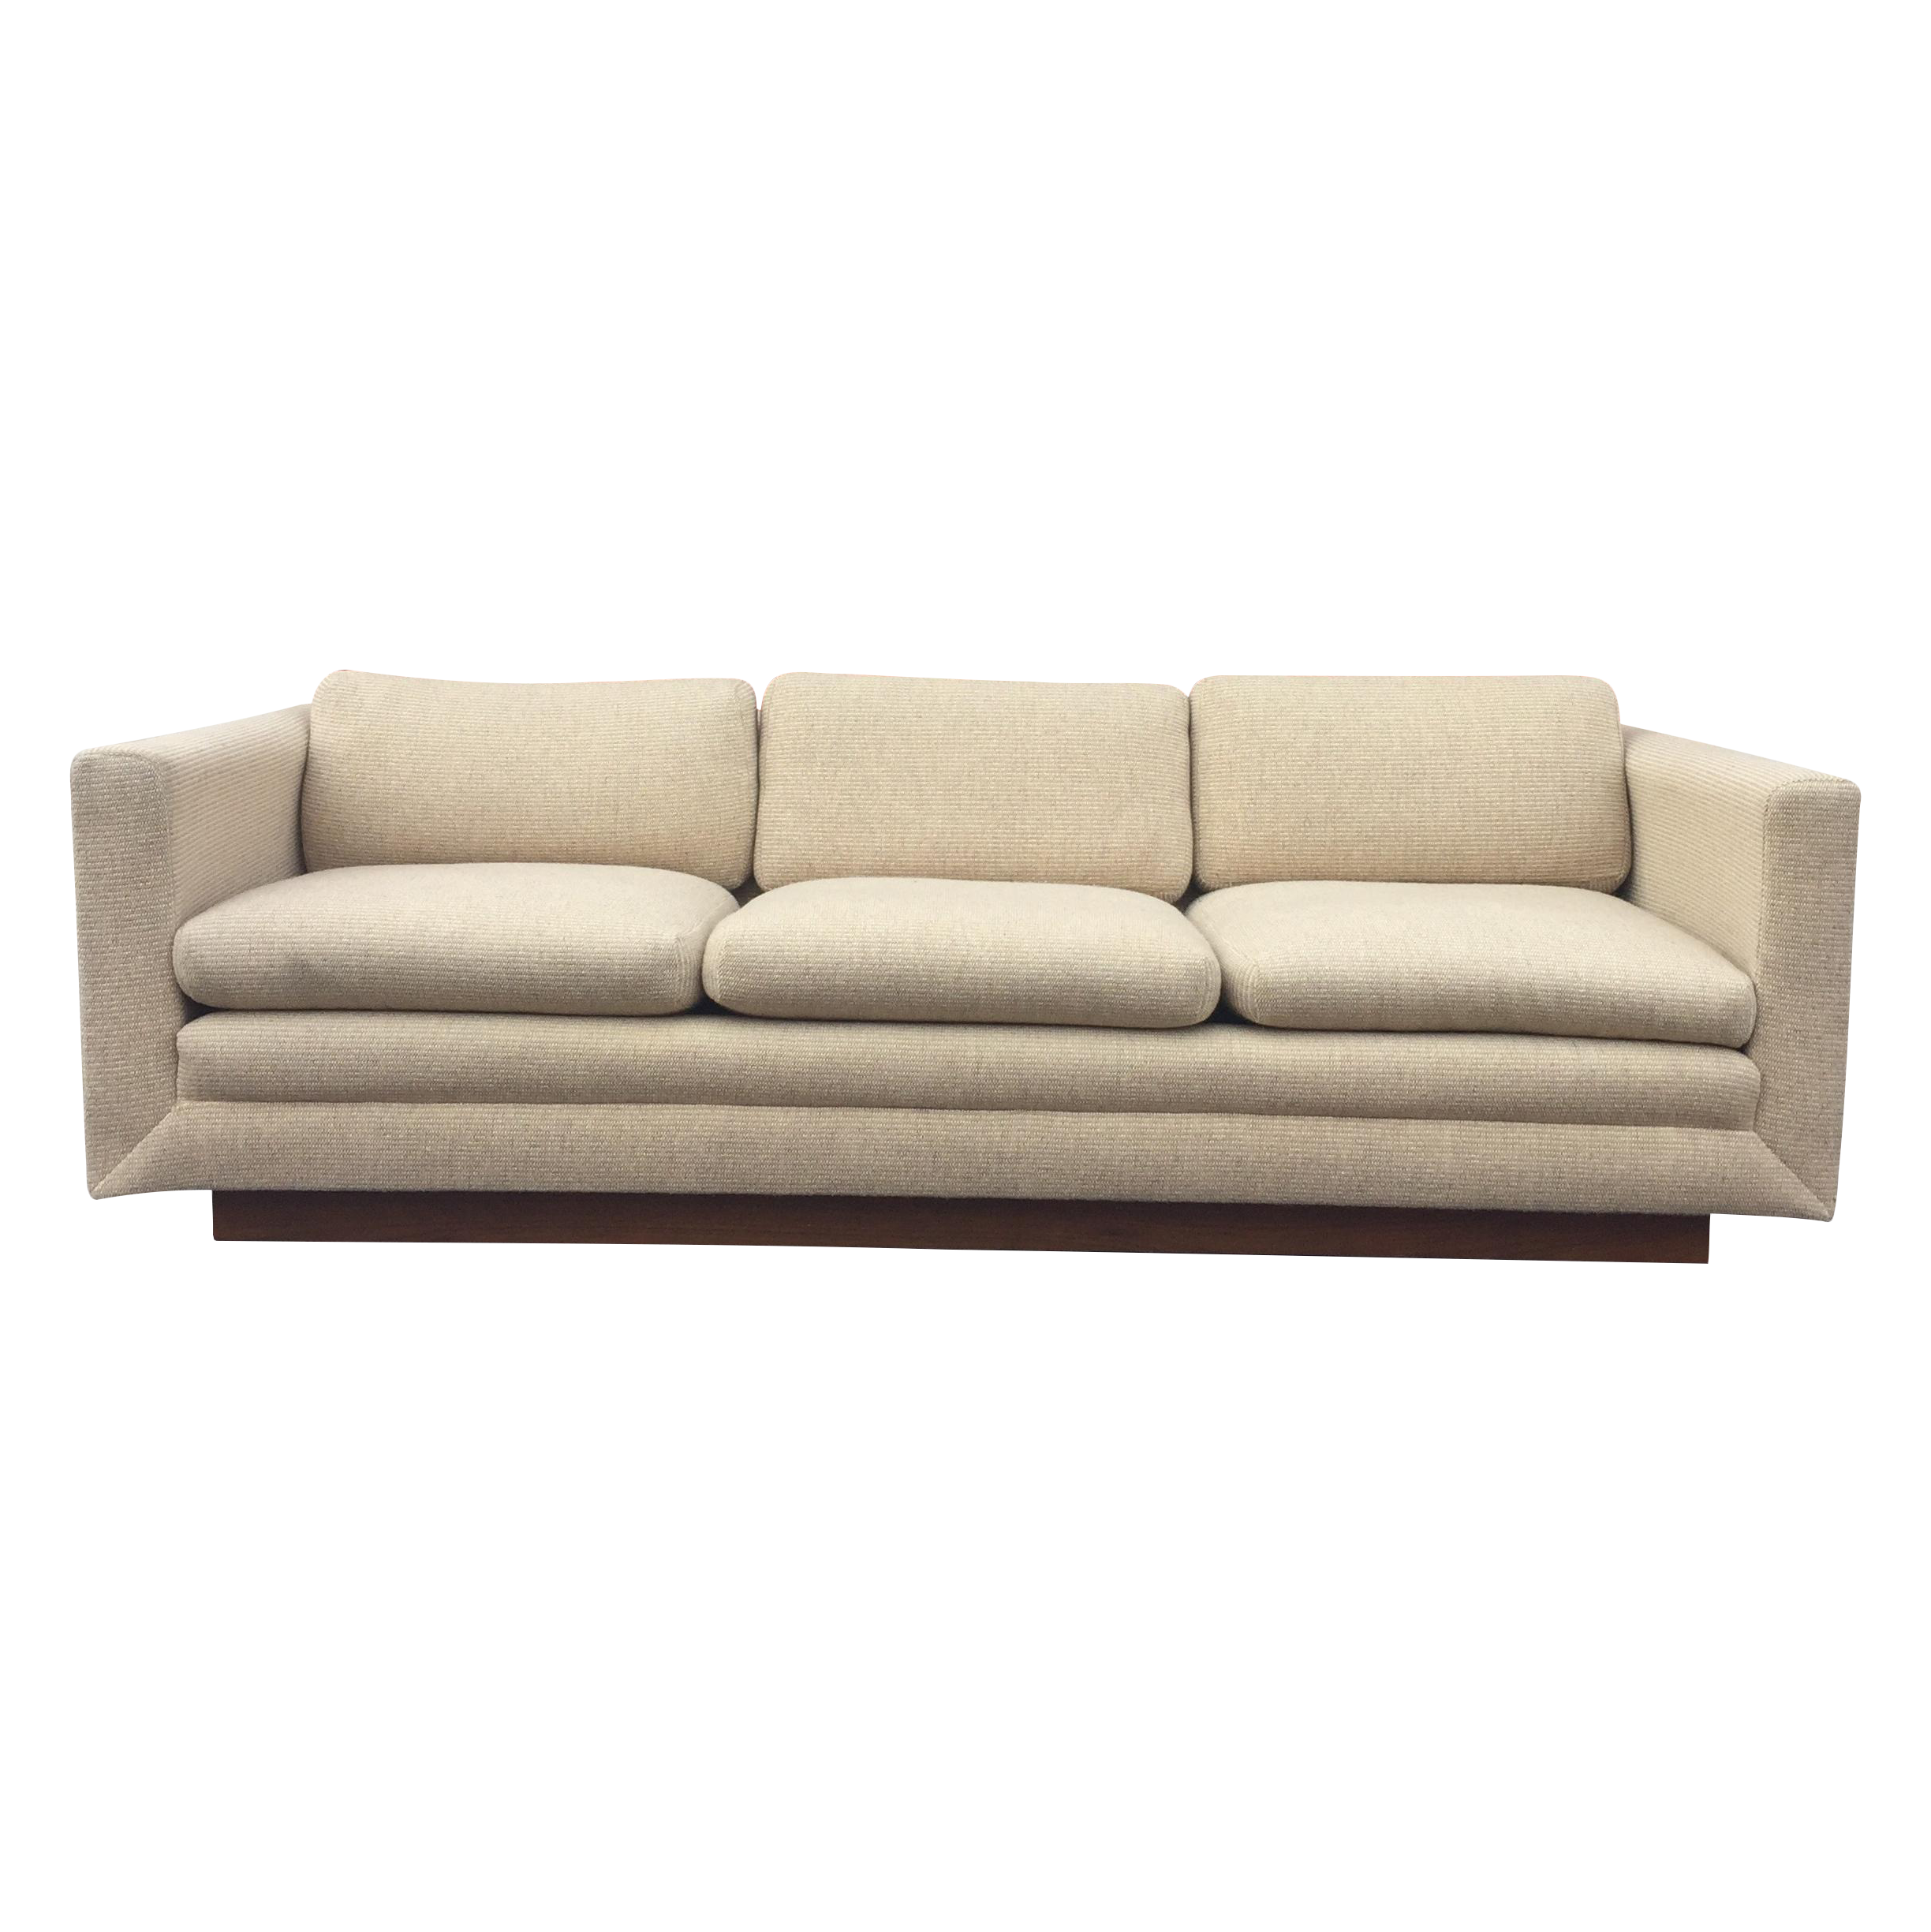 Good cream sofa 75 on sofas and couches ideas with cream sofa amazing cream sofa 60 for your sofa design ideas with cream sofa parisarafo Images